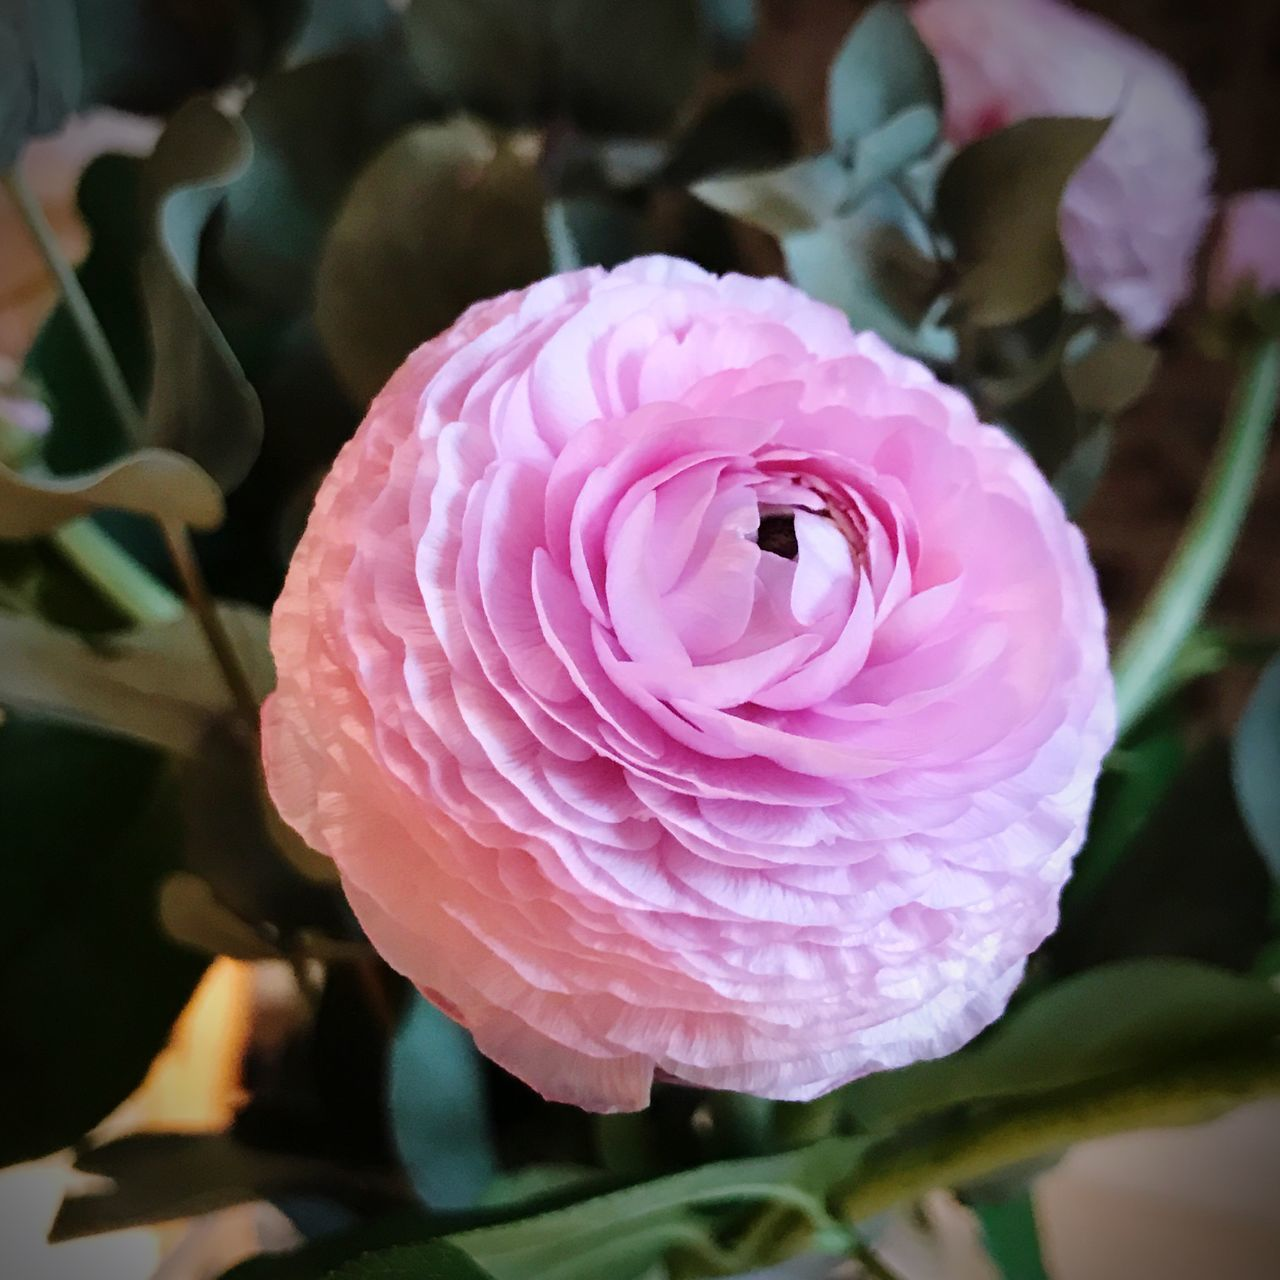 Flower Pink Ranunculus Single Flower Petal Fragility Freshness Nature Beauty In Nature Flower Head Pink Color Close-up Rose - Flower Plant Growth No People Blooming Outdoors Day Valentine's Bouquet